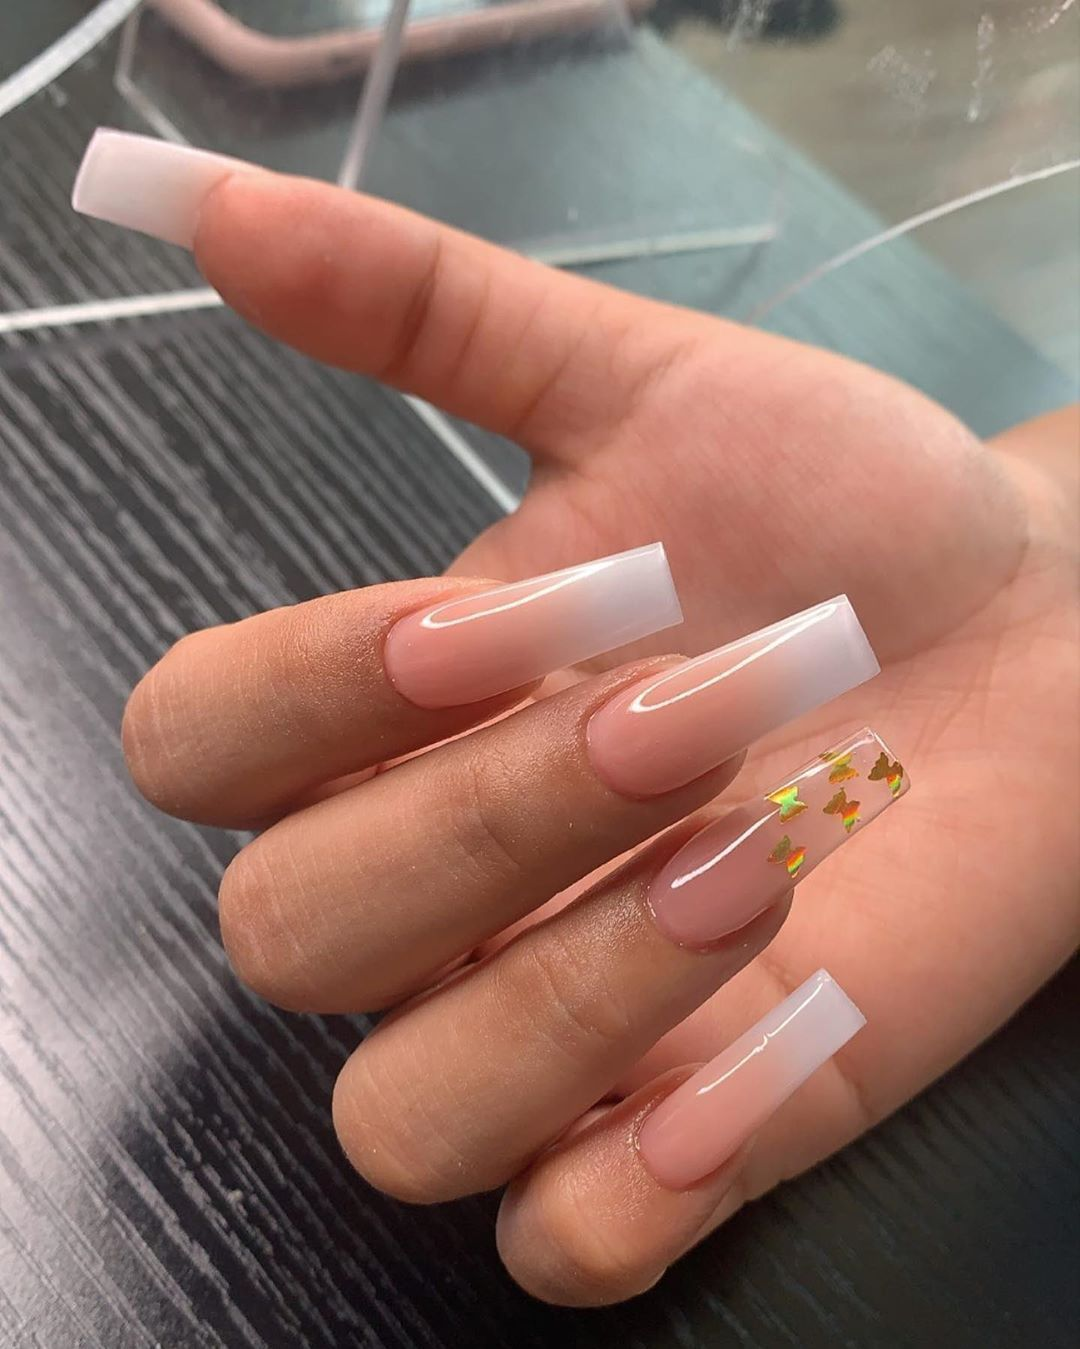 Pin On C L A W S In 2020 Ombre Acrylic Nails Simple Acrylic Nails Pretty Acrylic Nails